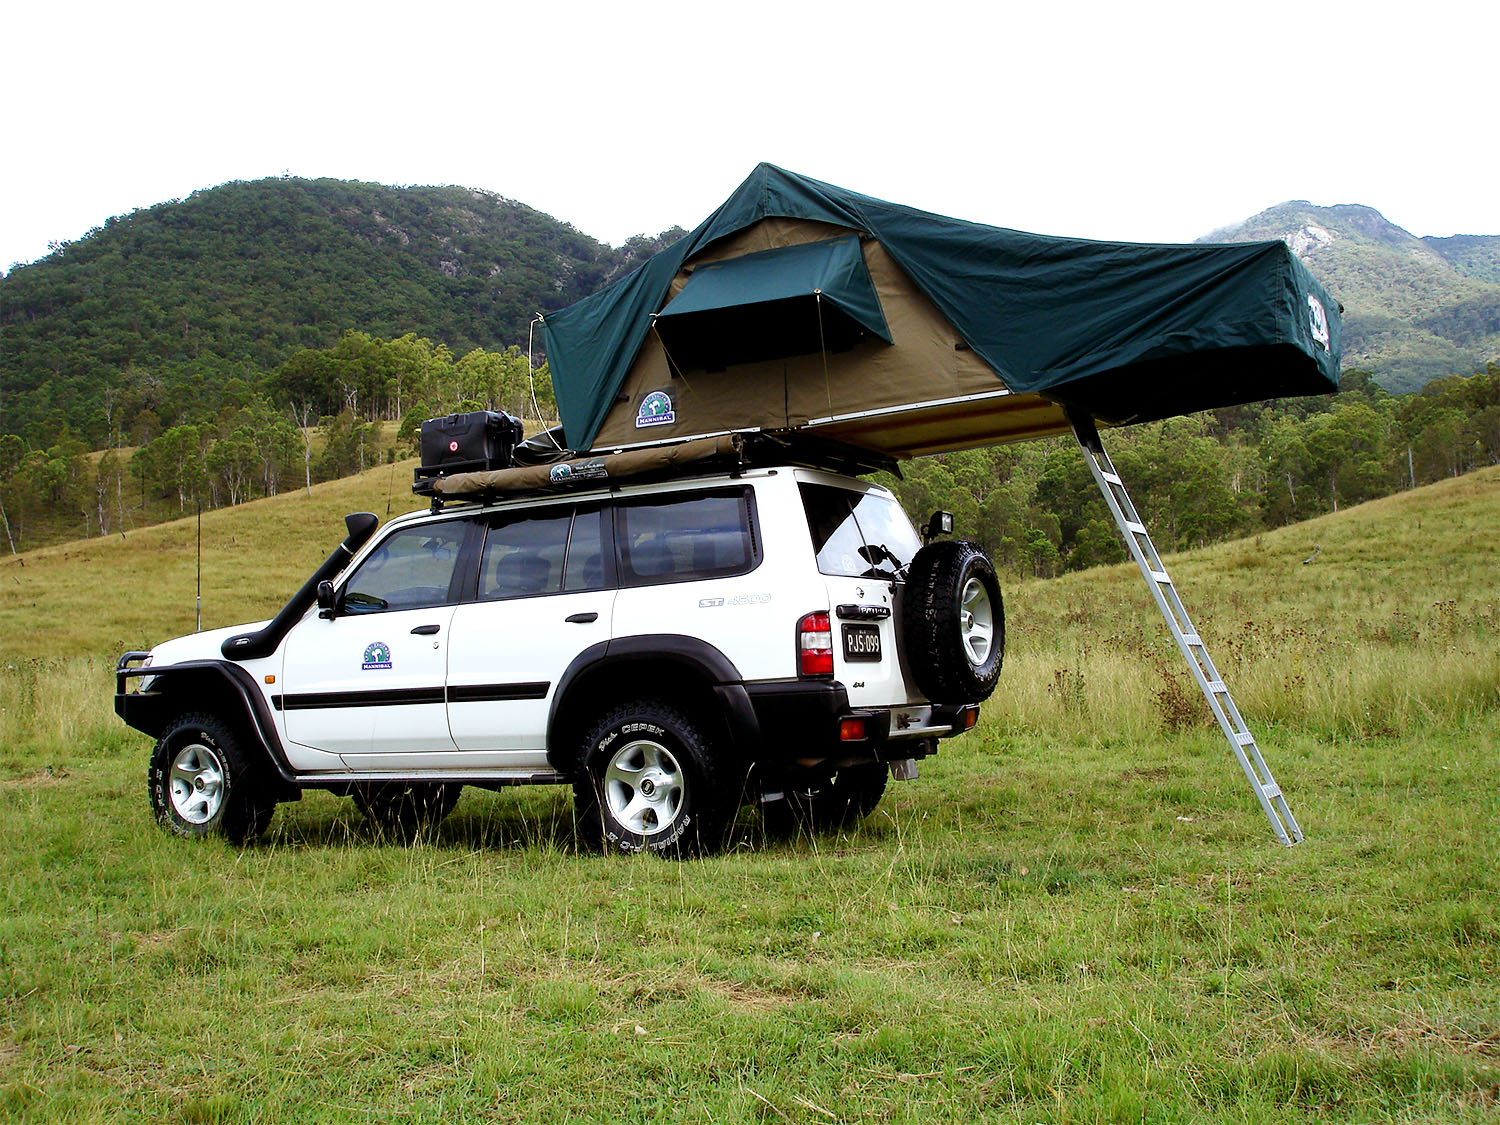 Hannibal Safari Equipment - Classic Tent with Jumbo Fly Sheet